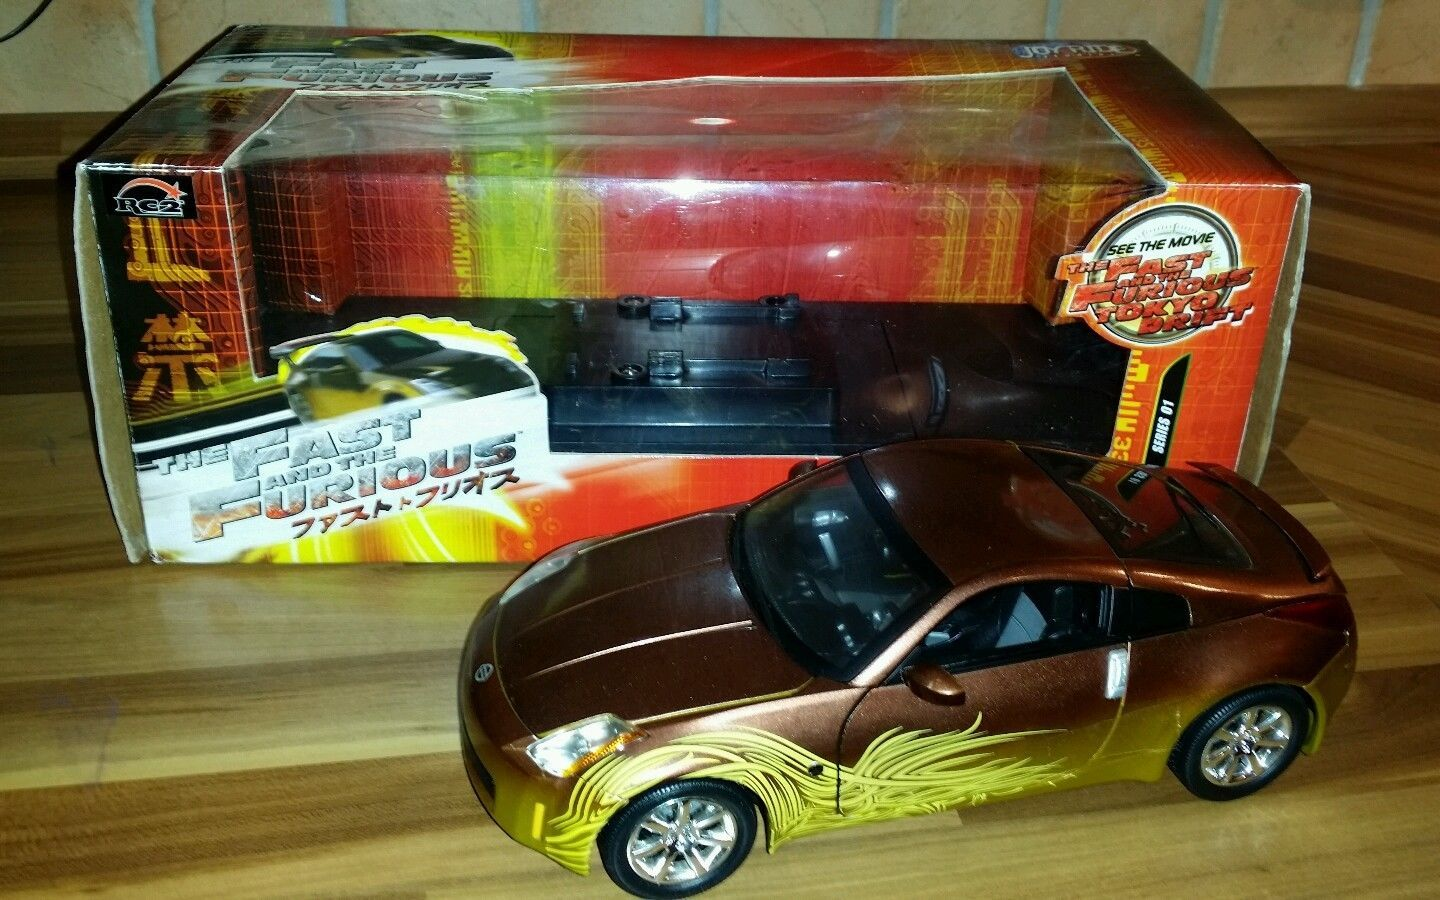 nissan 350z ovp 1 18 ertl joyride rc2 fast furious modell 2fast2furious ebay fast. Black Bedroom Furniture Sets. Home Design Ideas